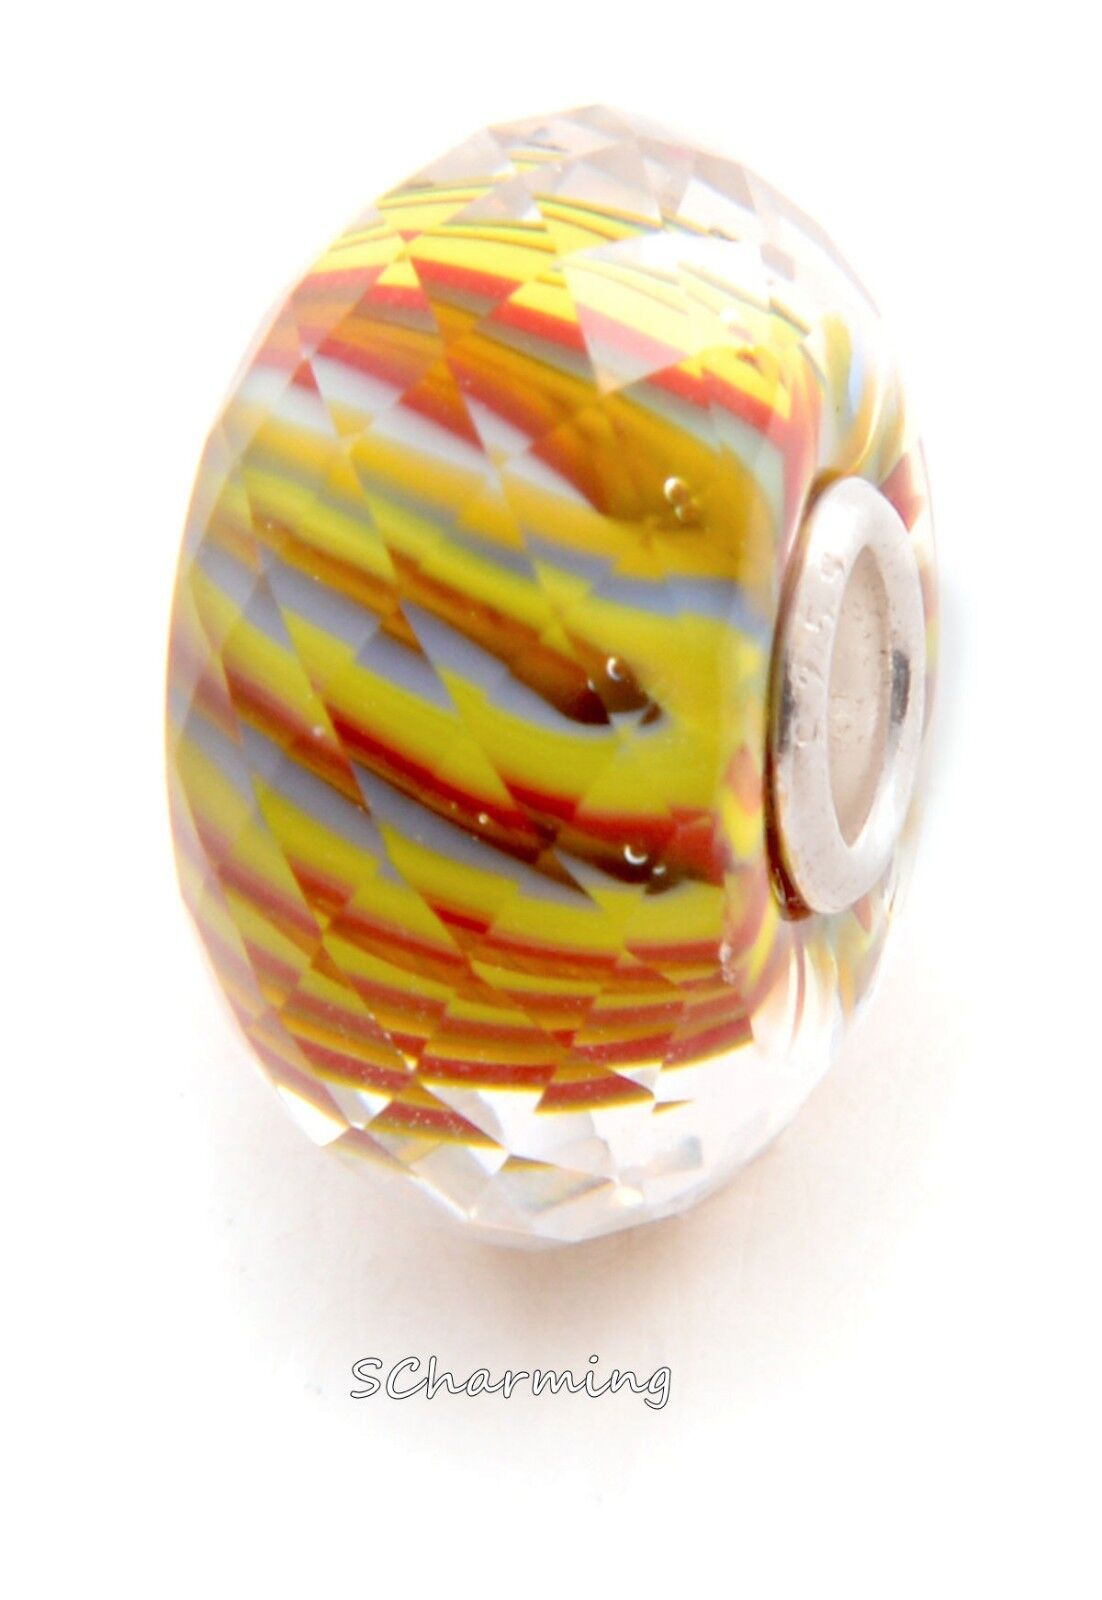 Authentic Trollbeads Glass River of Life Facet 62304 from Eastern Facet Kit